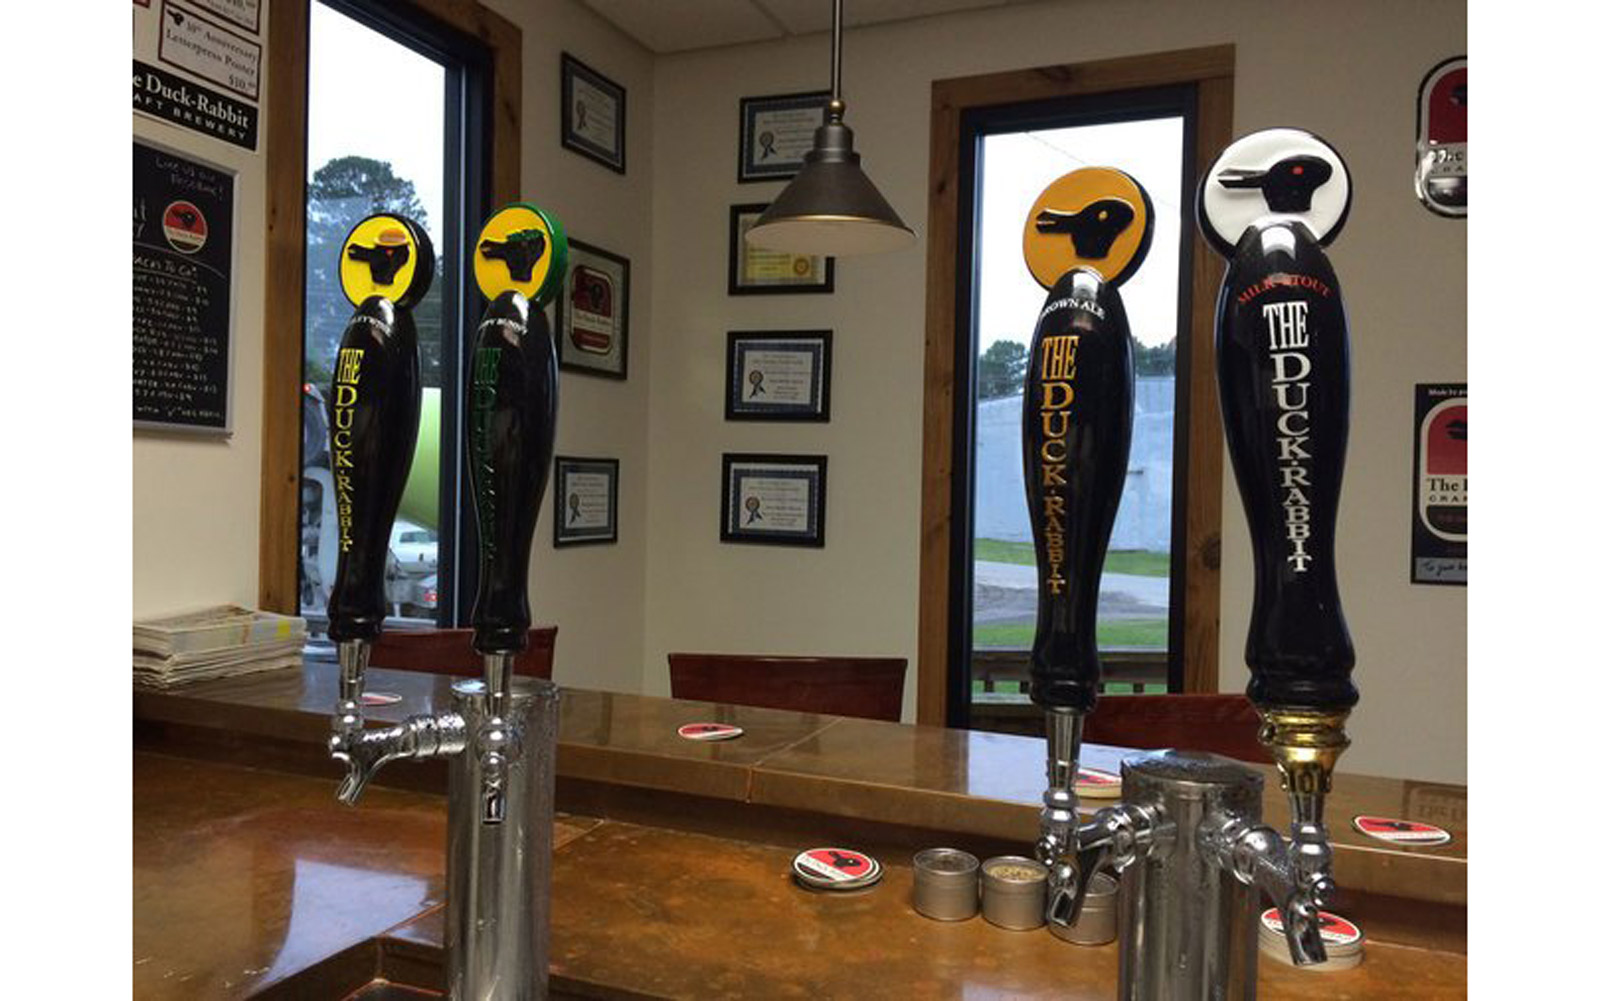 North Carolina: The Duck-Rabbit Craft Brewery